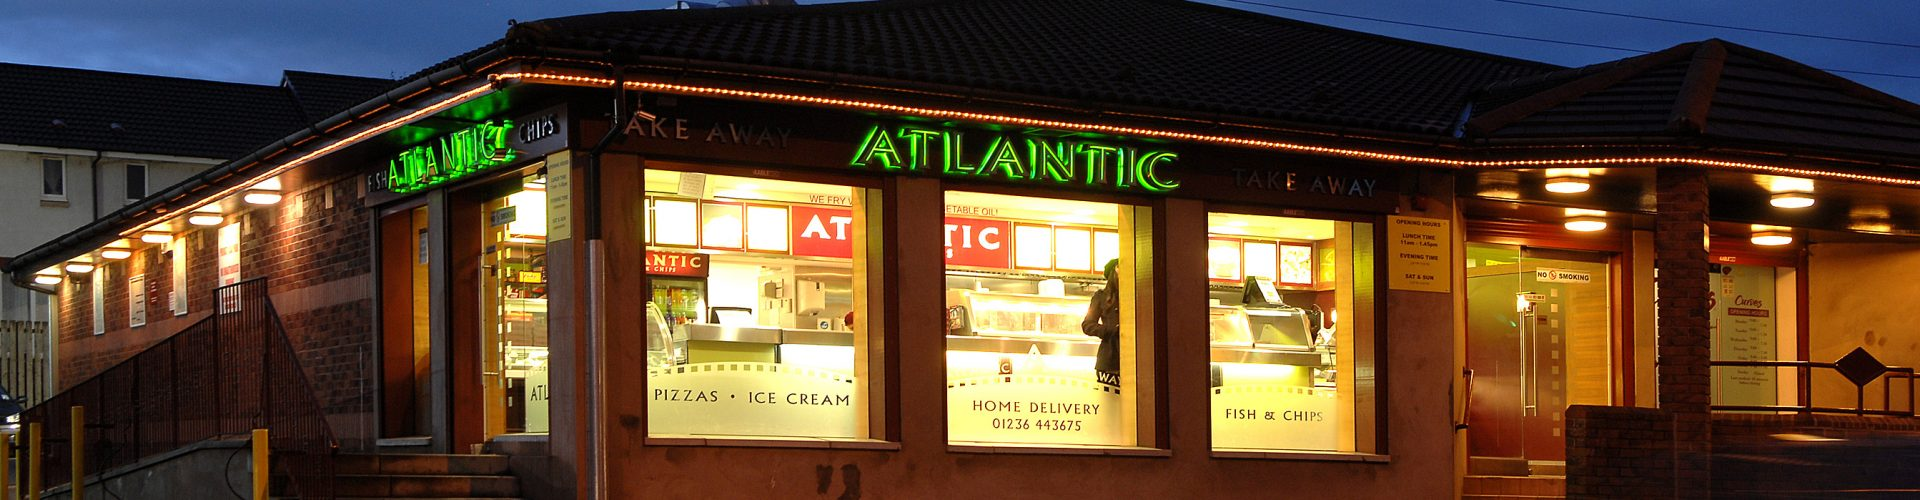 atlantic building outside at night